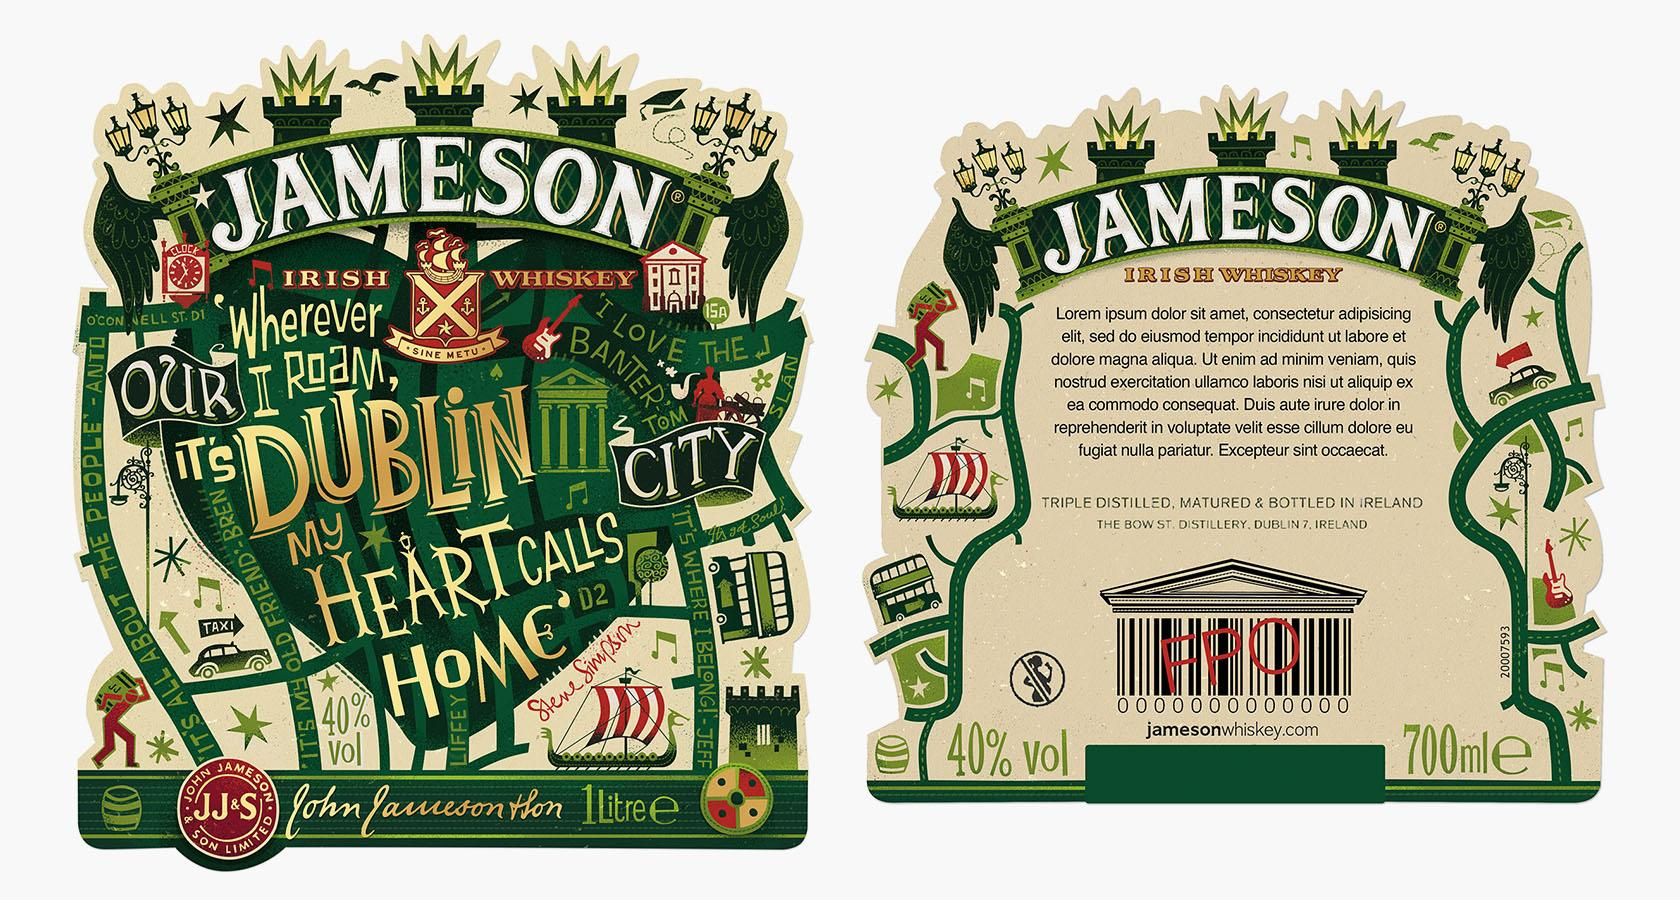 steve simpson jameson irish whiskey bottle design hand drawn lettering